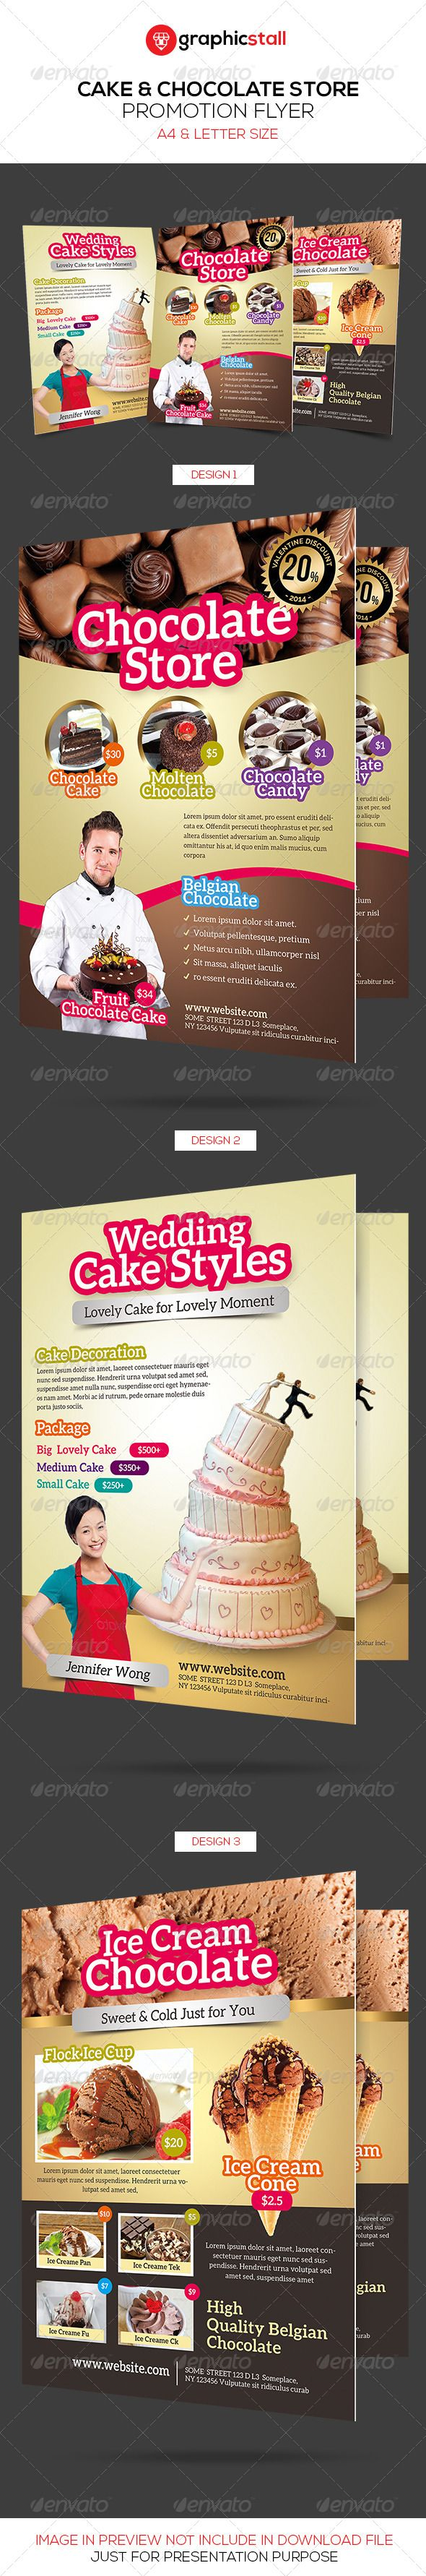 cake chocolate store promotion flyer commerce flyers sweets